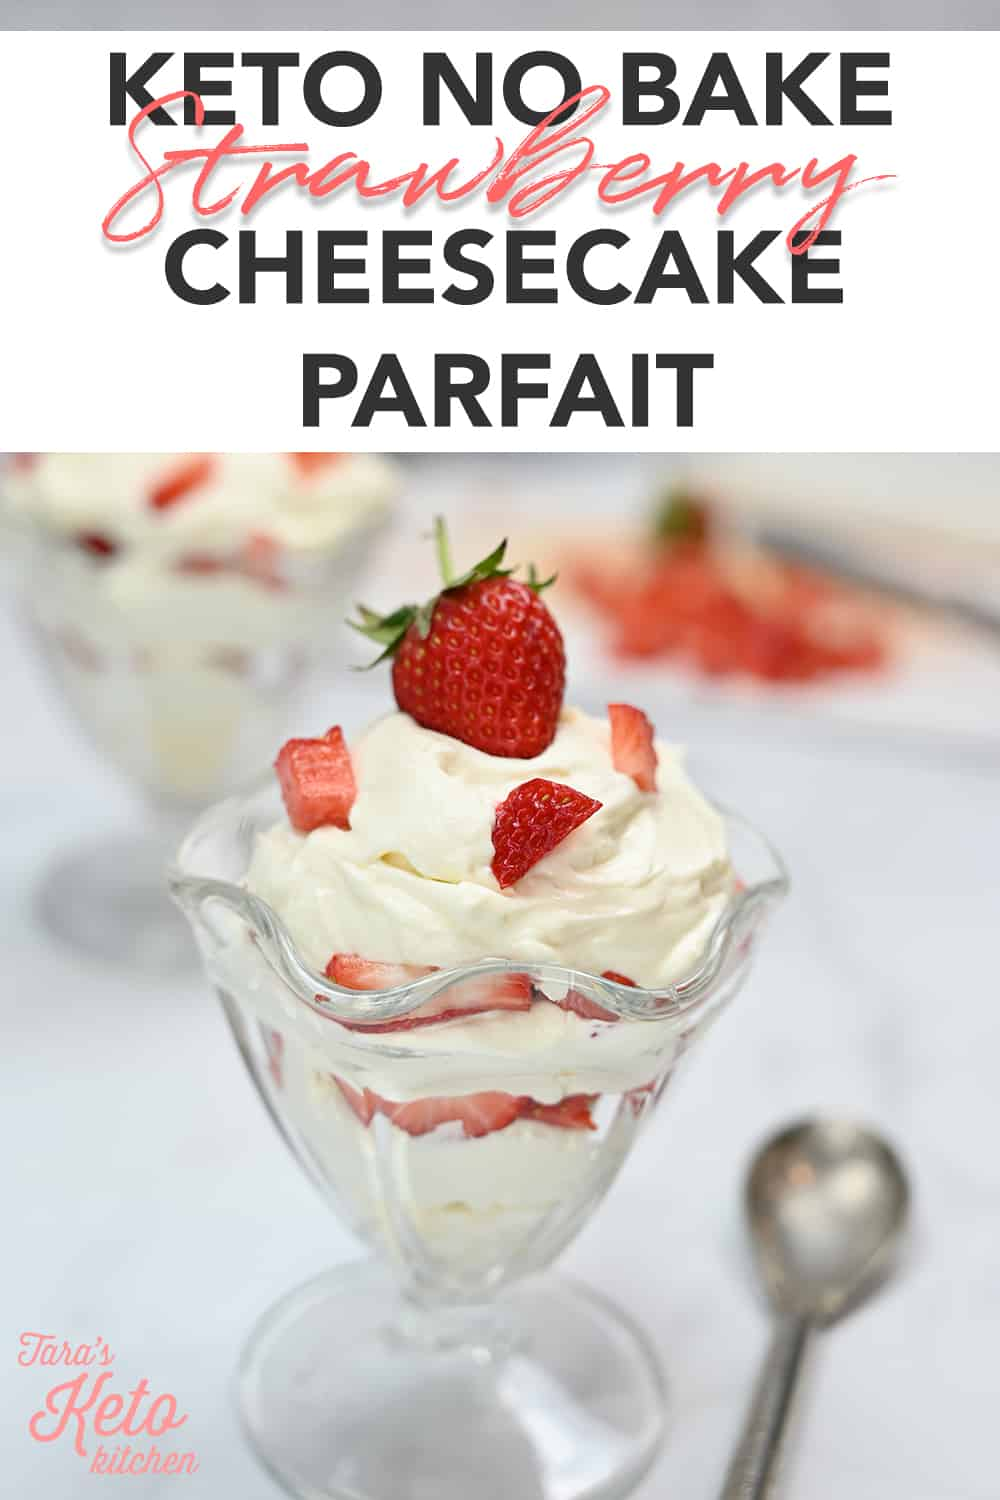 Keto No Bake Strawberry Cheesecake Parfait built in layers in a tall, glass parfait dish with an almond flour crust with a spoon sitting beside it